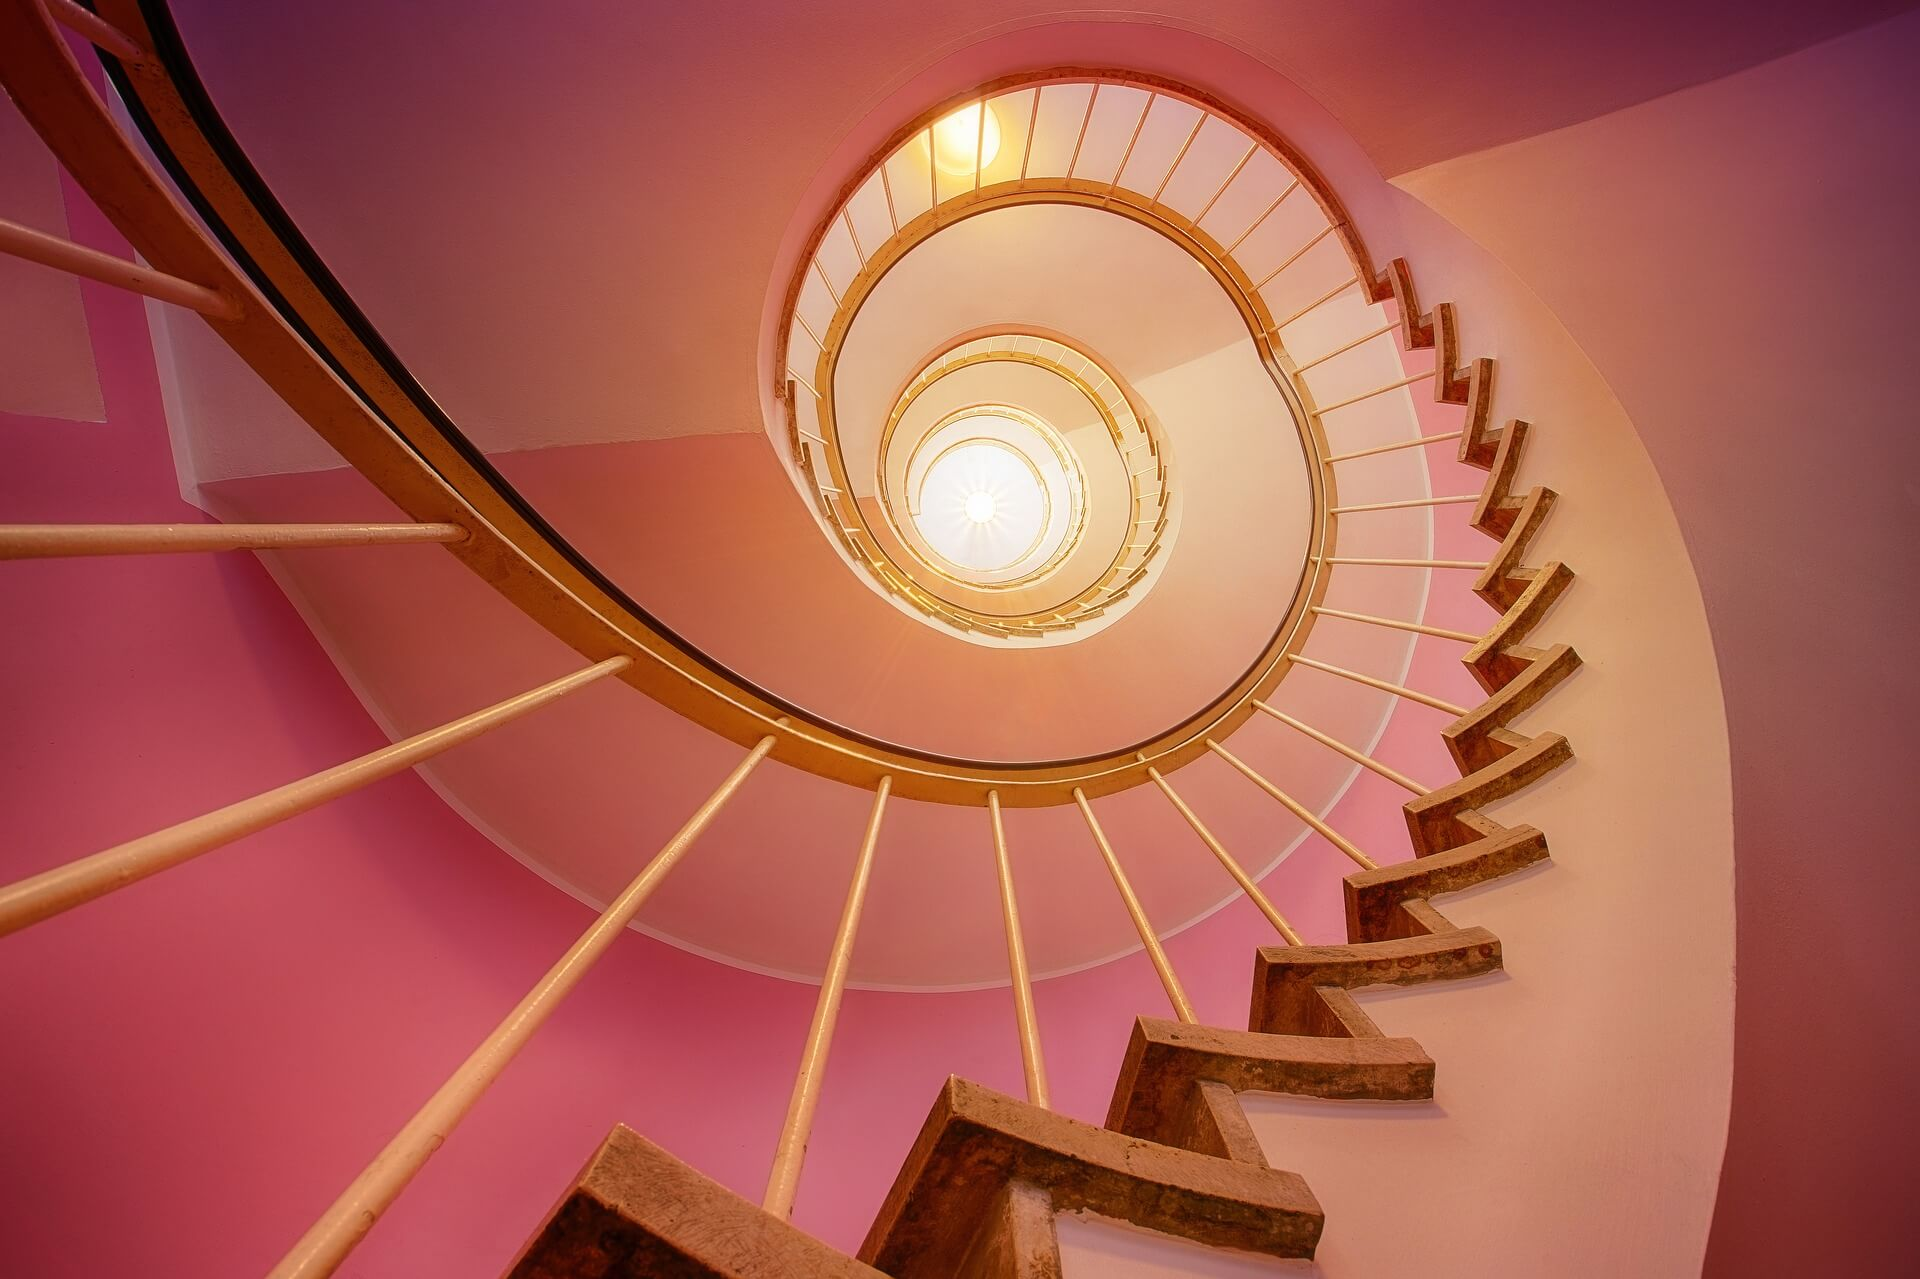 Stairs leading to the light